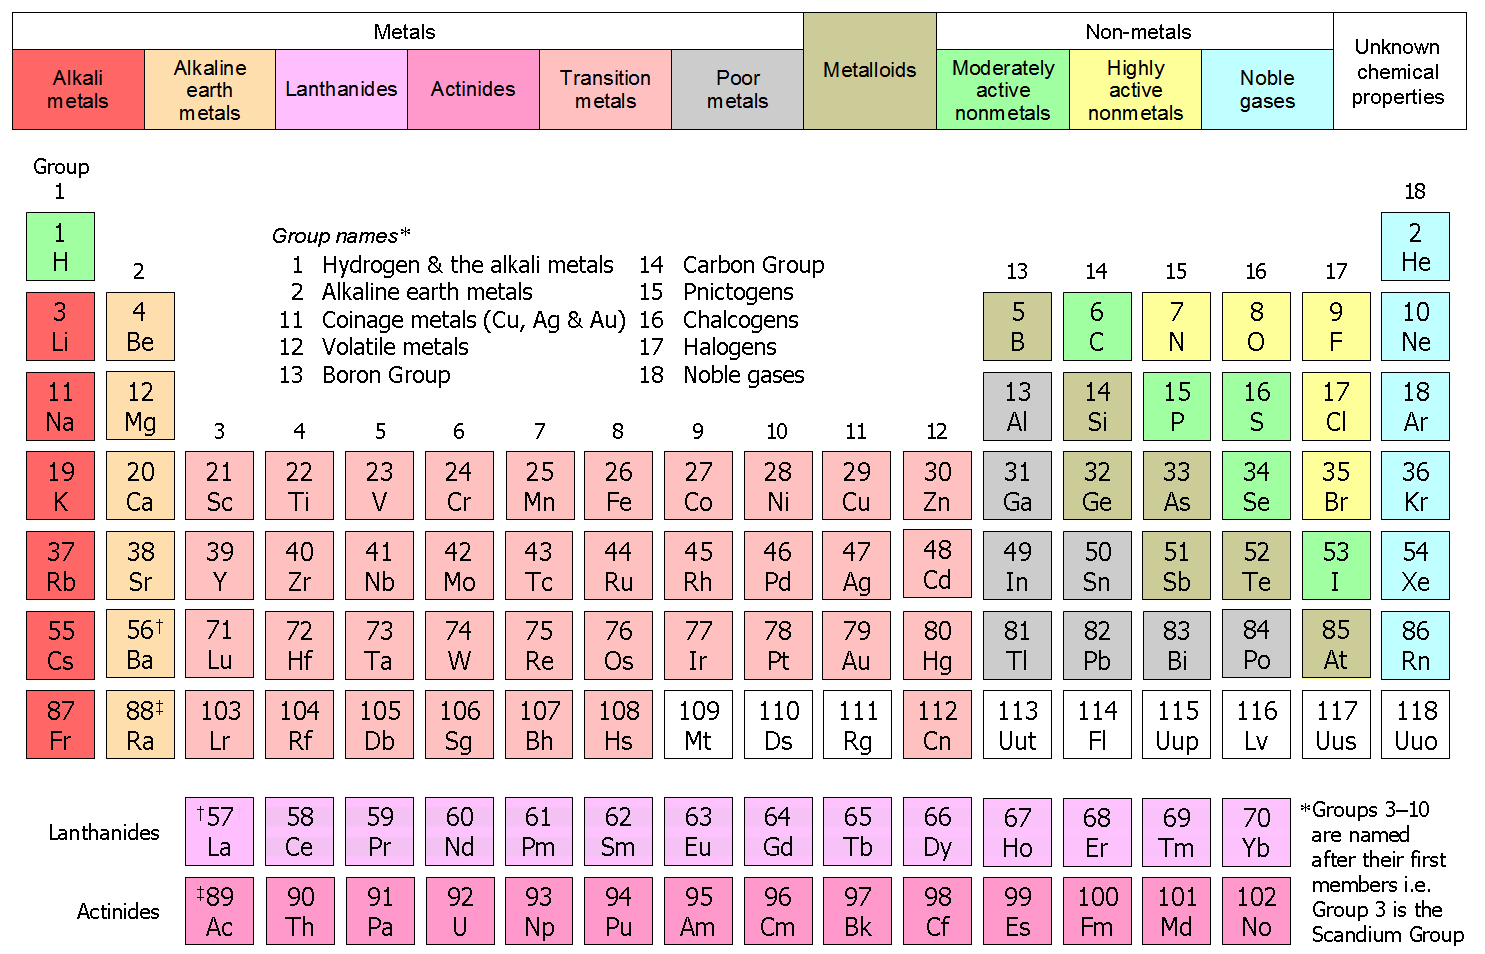 Structure of the modern periodic table chem in 10 online image httpsuploadmediawikipediacommons338r20g0 gamestrikefo Image collections